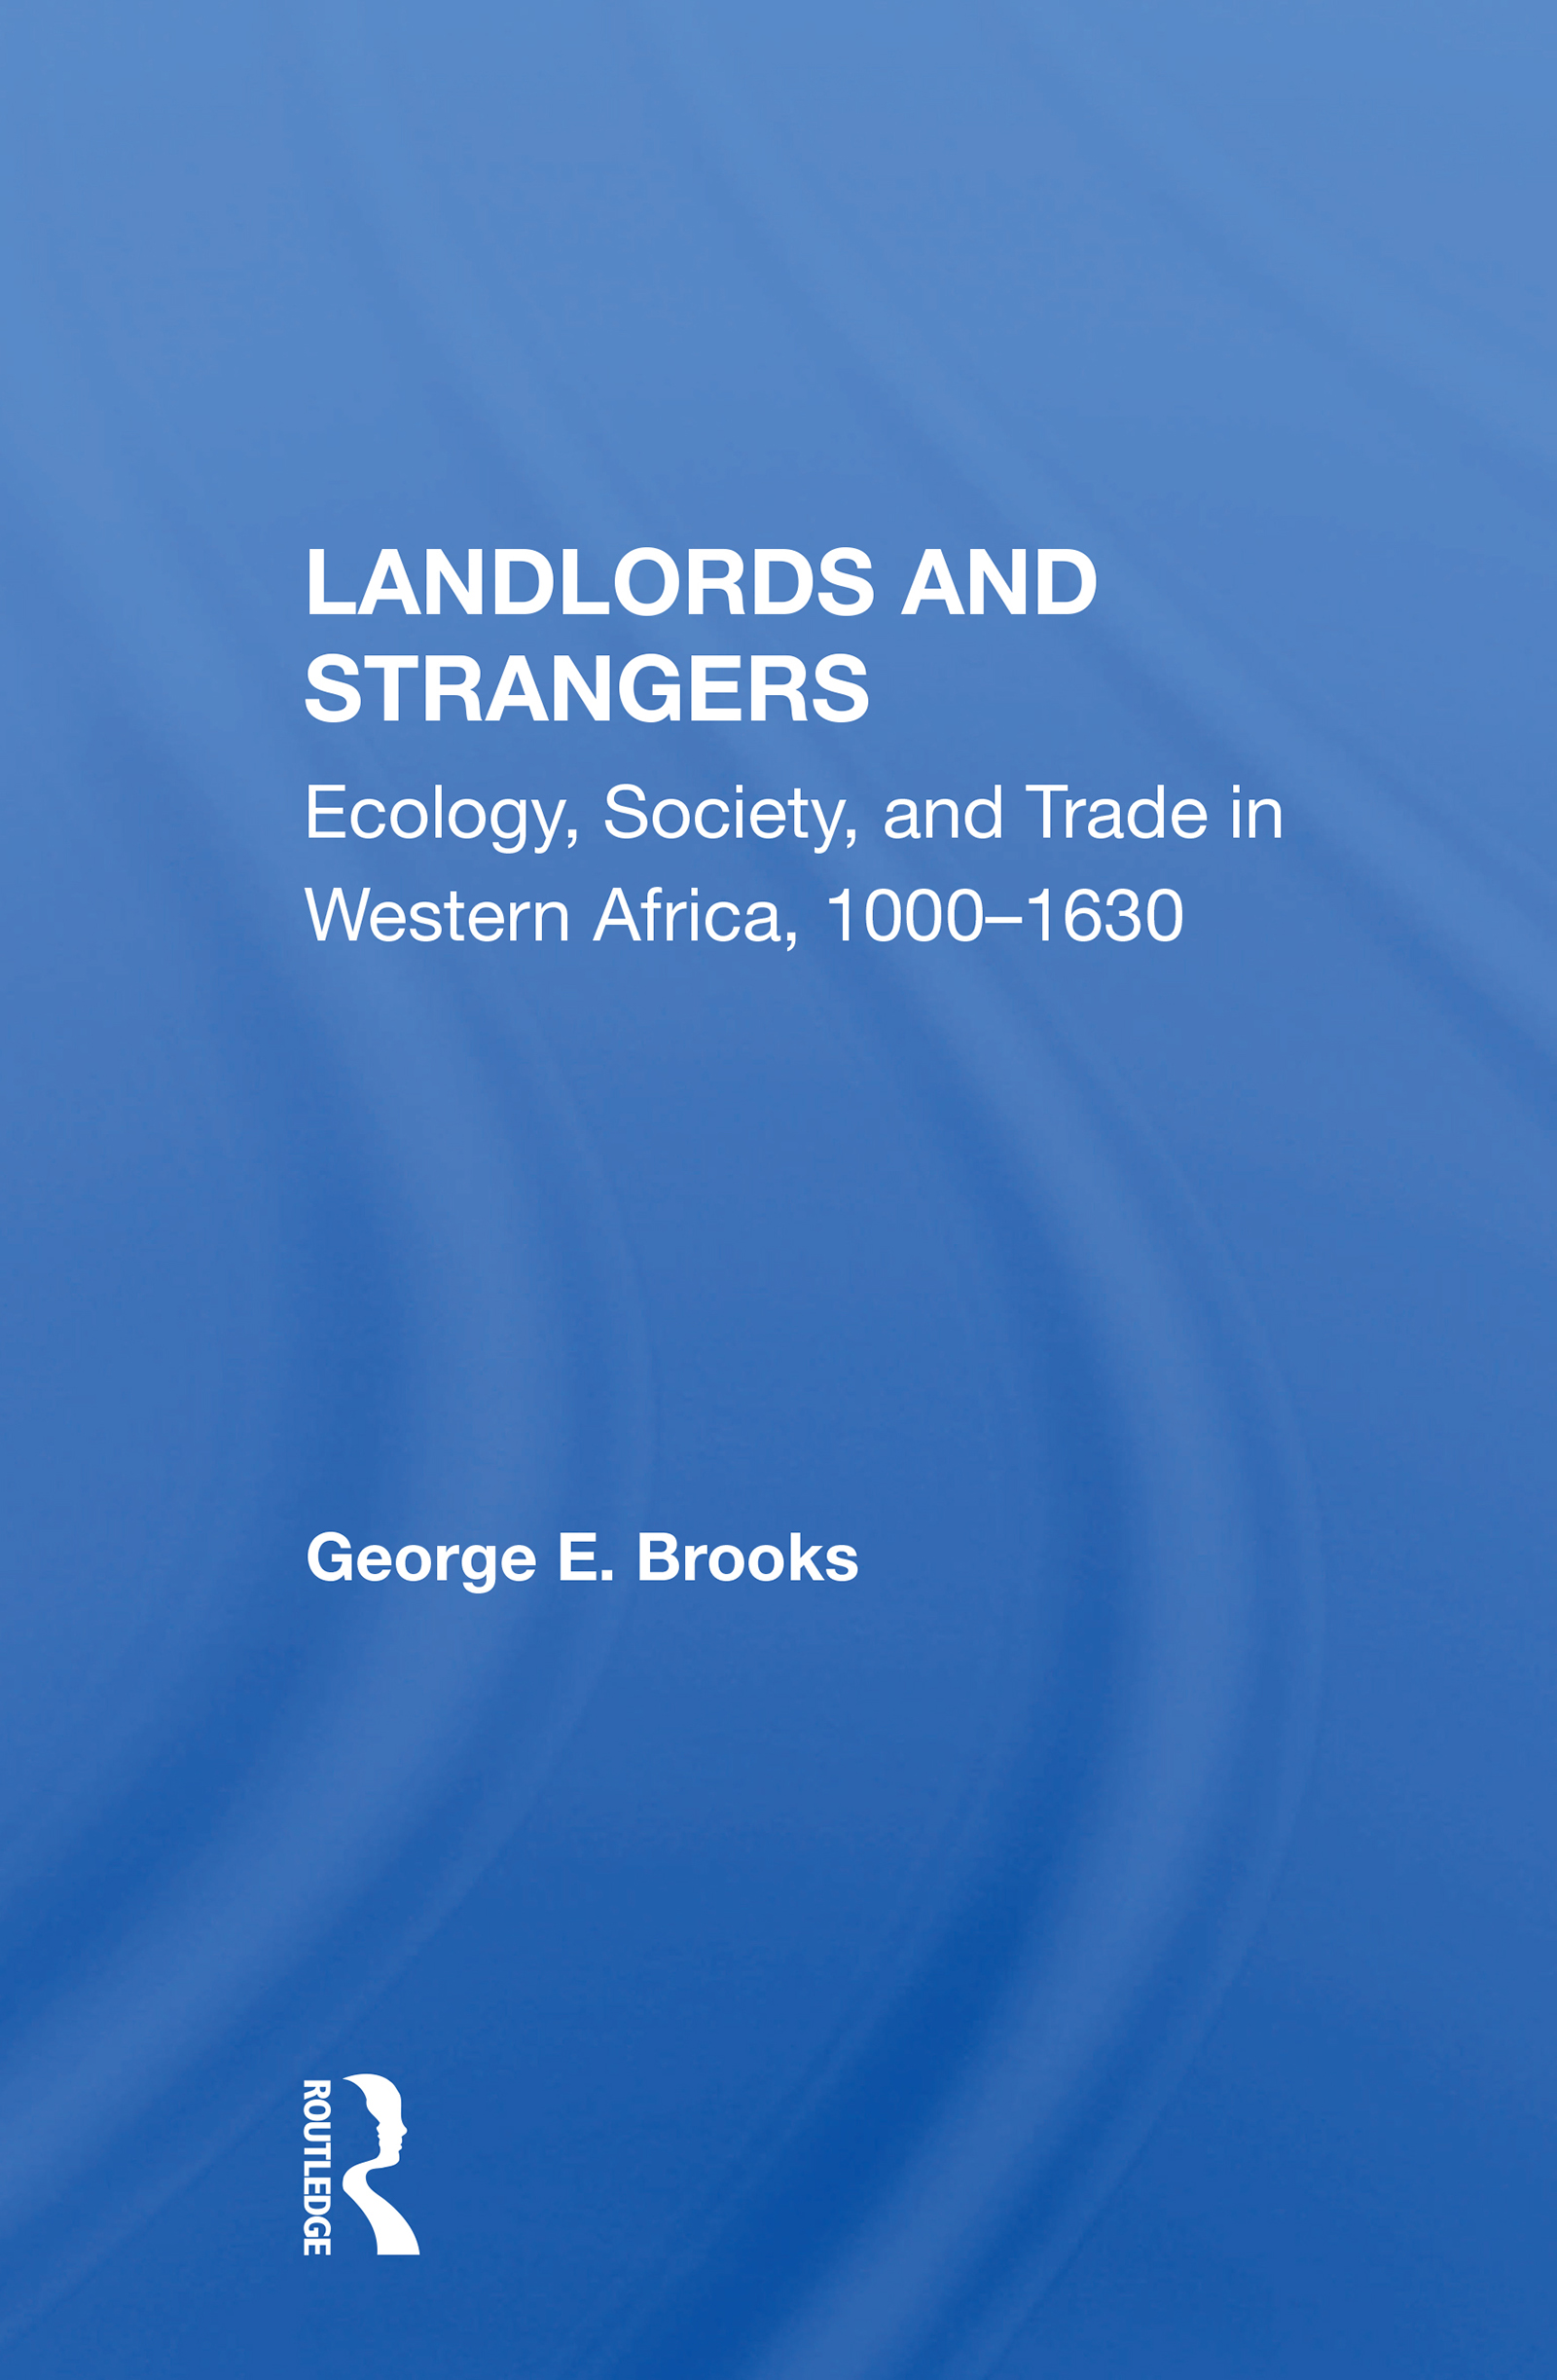 Landlords and Strangers